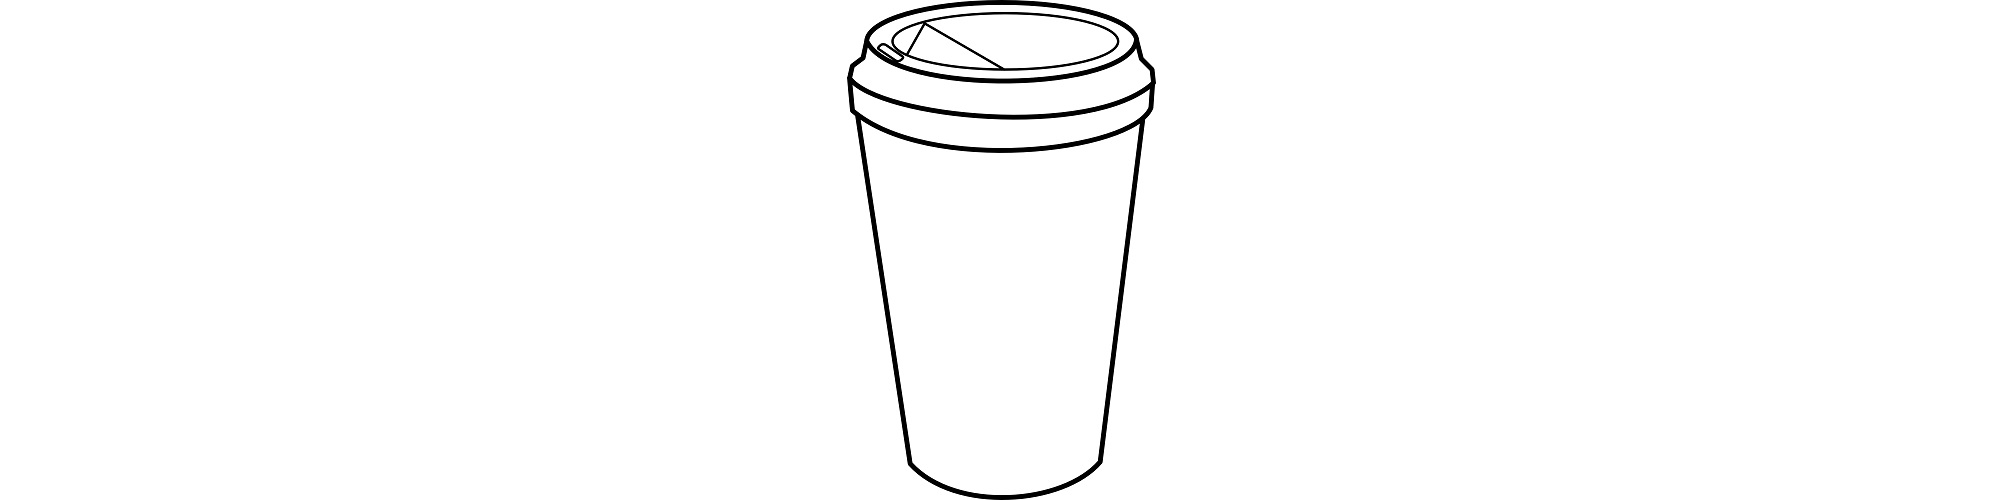 """Disposable coffee cup illustration - """"Chitchat"""" microfiction"""